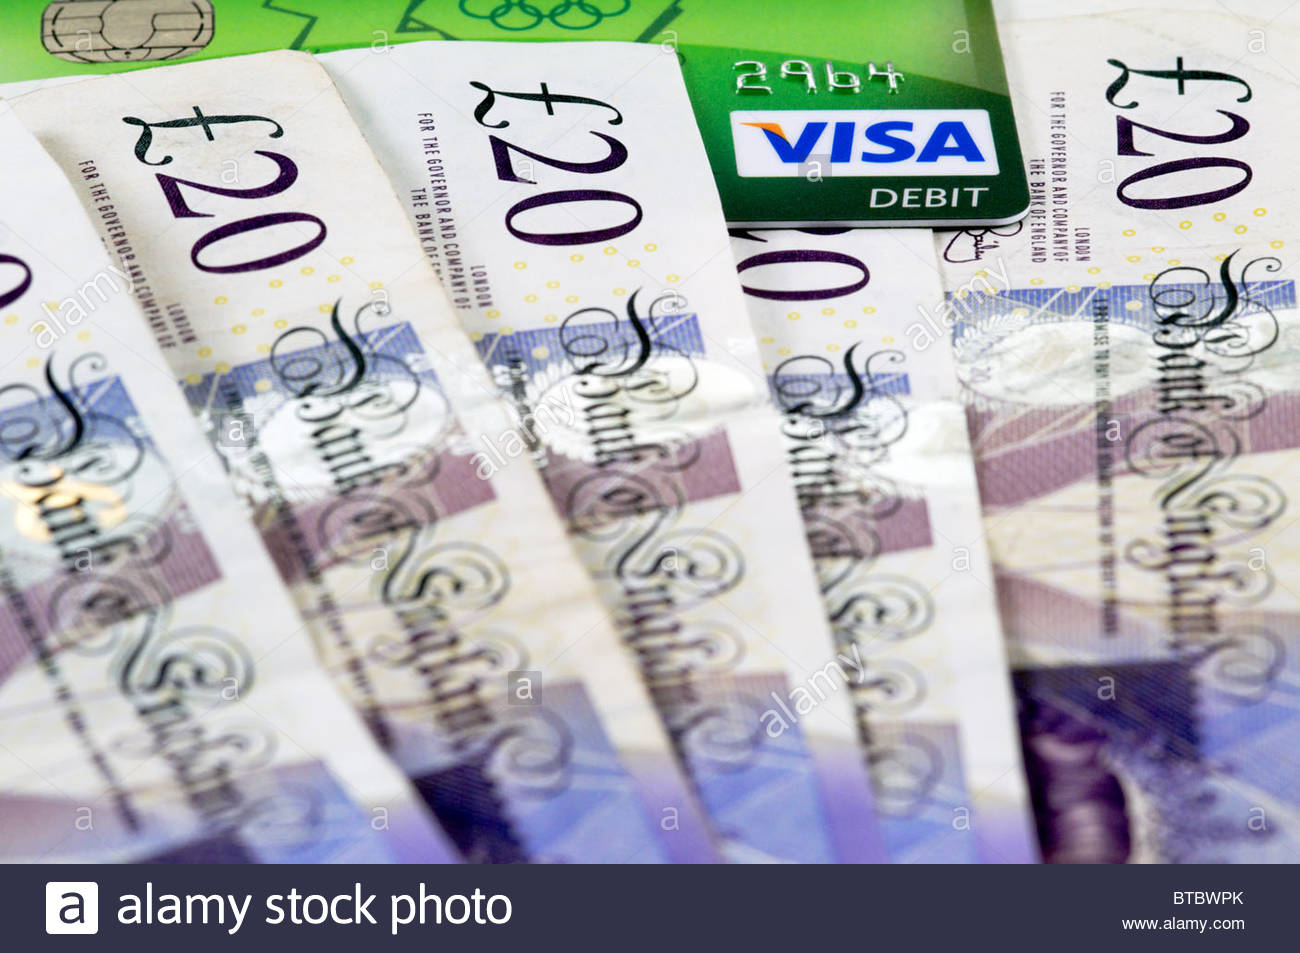 british uk 20 pound notes with a visa debit card - Stock Image